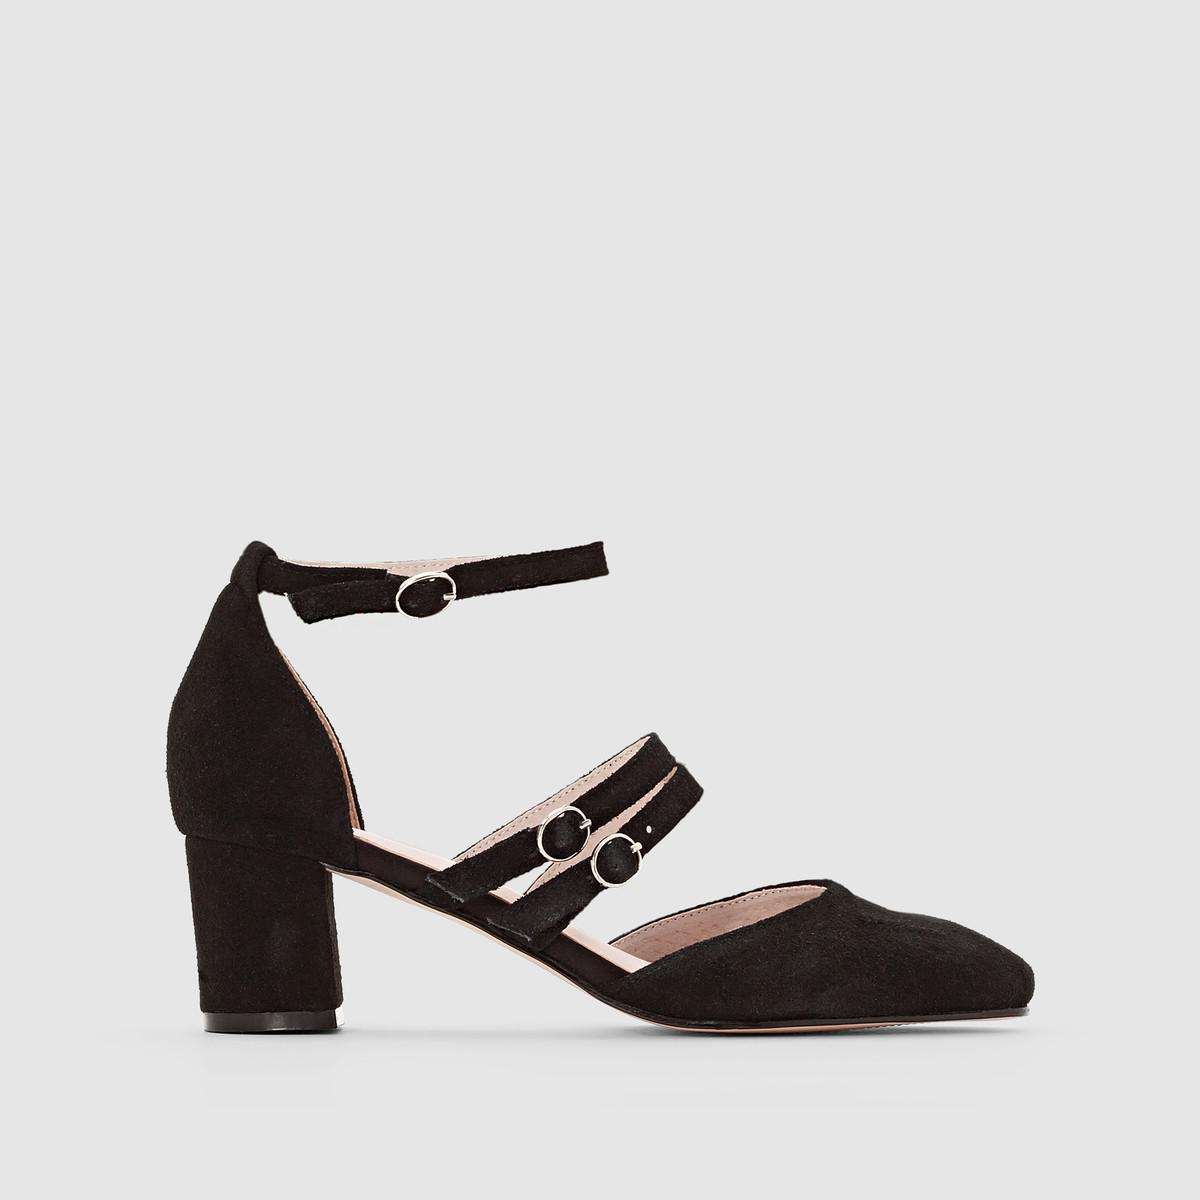 low cost sale online cheap sale release dates La Redoute Collections Leather Multi-Strap Ballet Pumps free shipping brand new unisex collections cheap online goTSk8